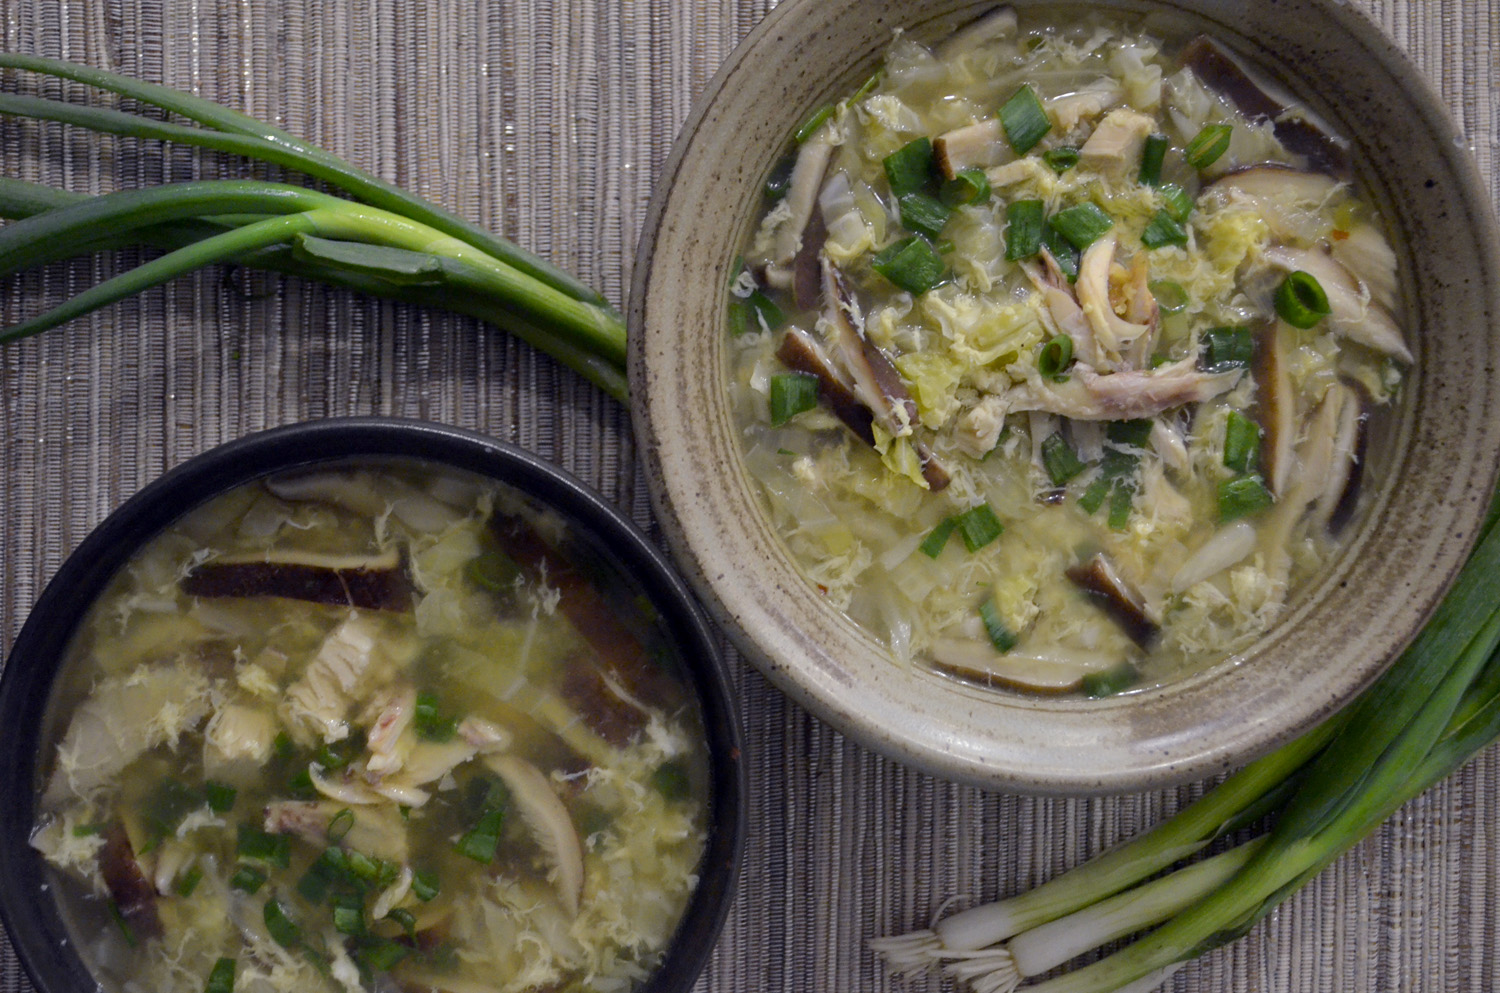 Rise Noodle Egg Drop Soup with Shiitakes, cabbage and Chicken